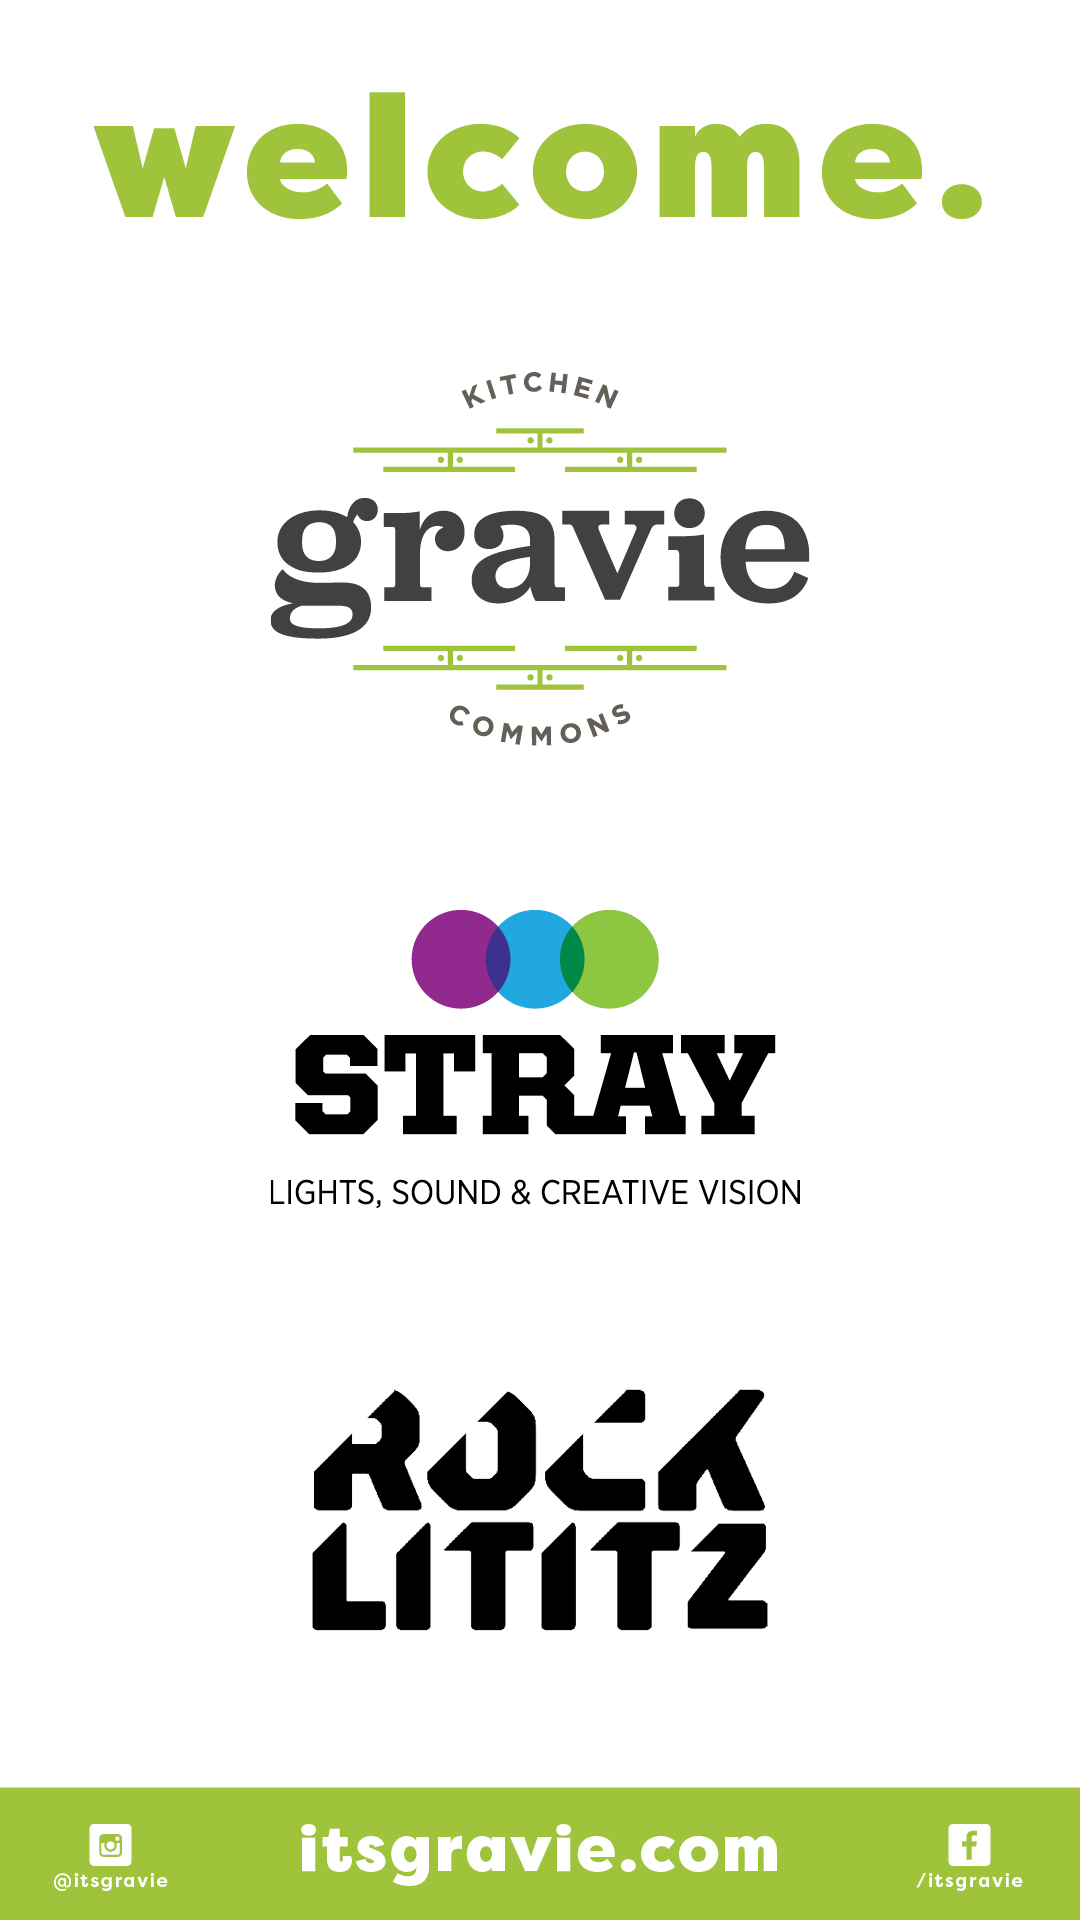 Gravie-Chamber-welcome.png